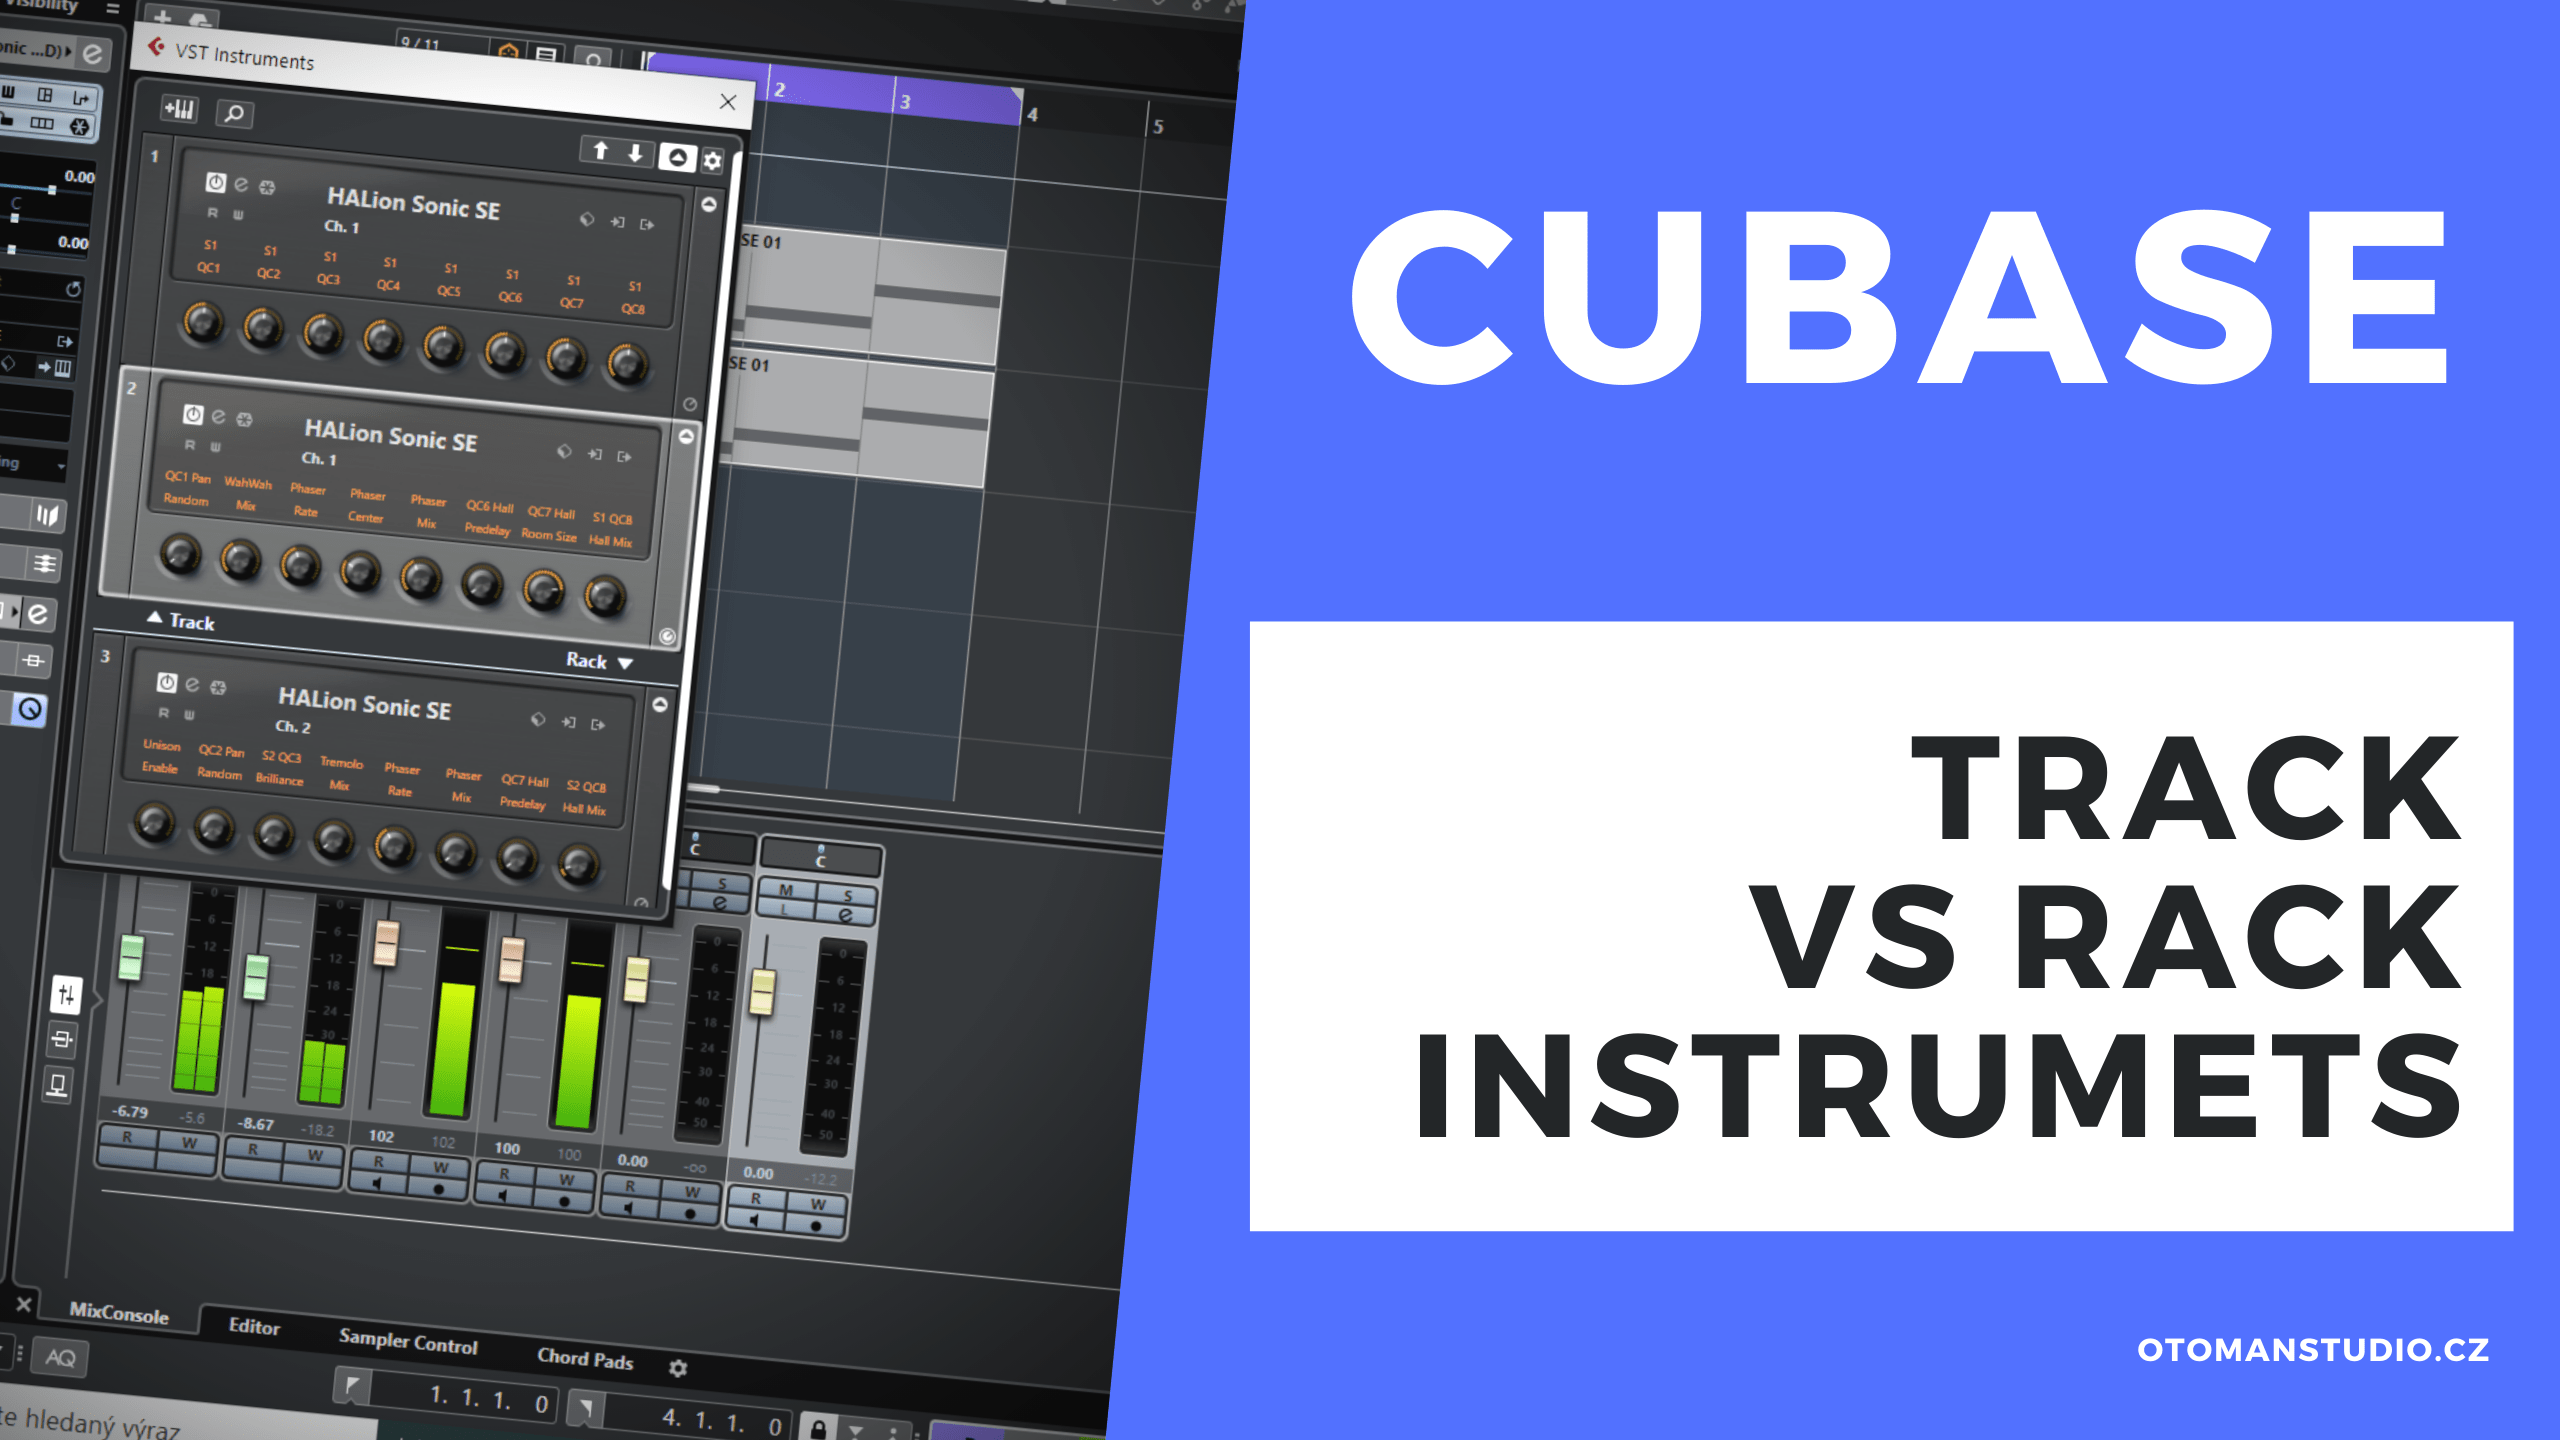 Cubase – TRACK vs RACK Instruments